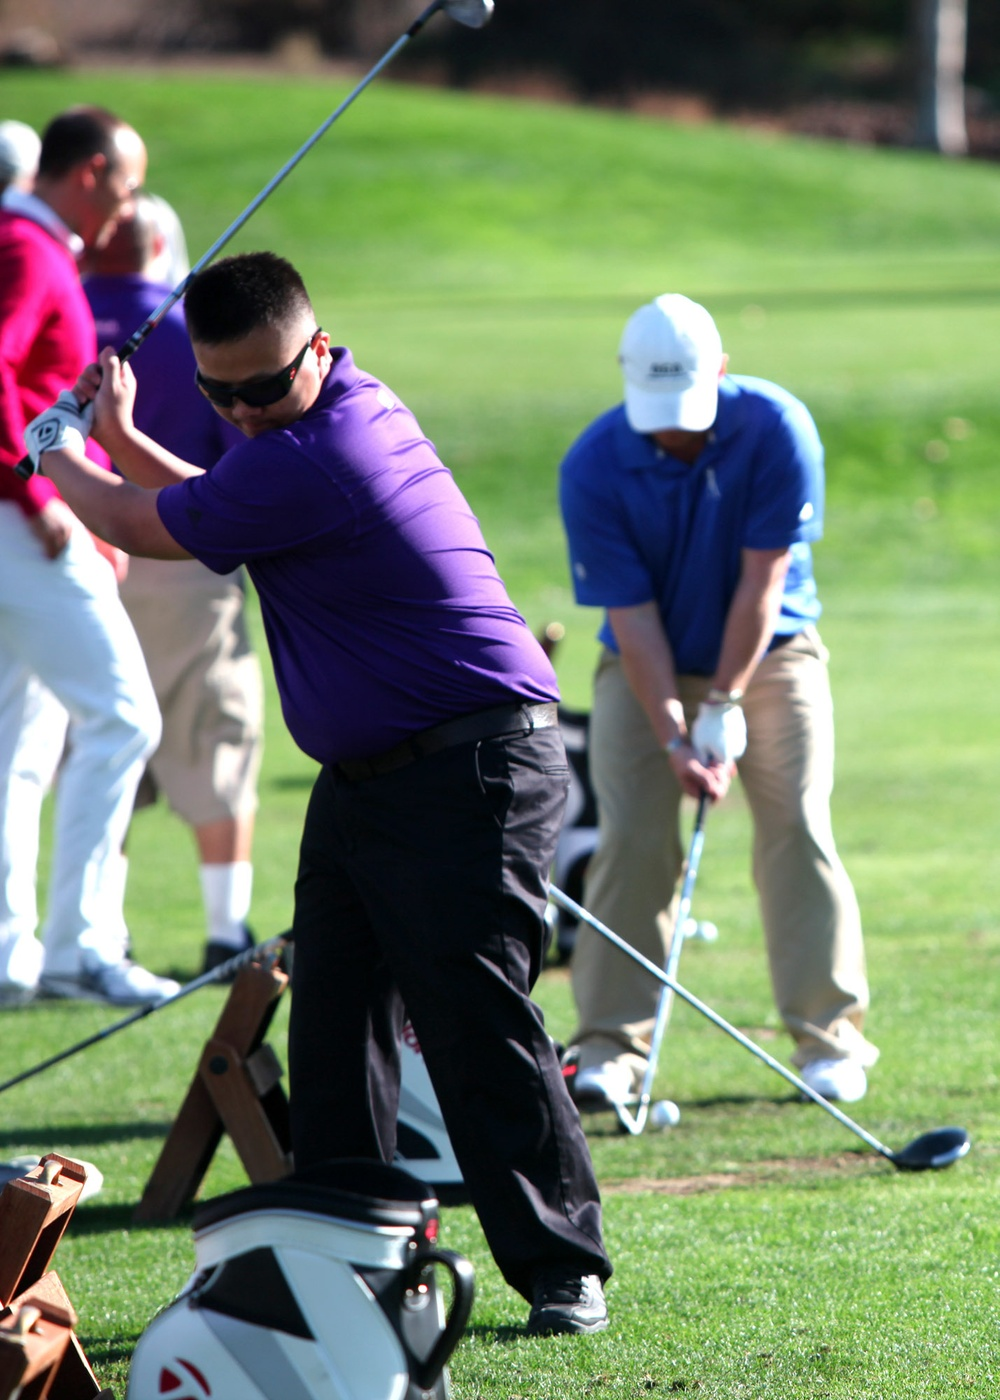 Wounded Marines rehab with pro golf help